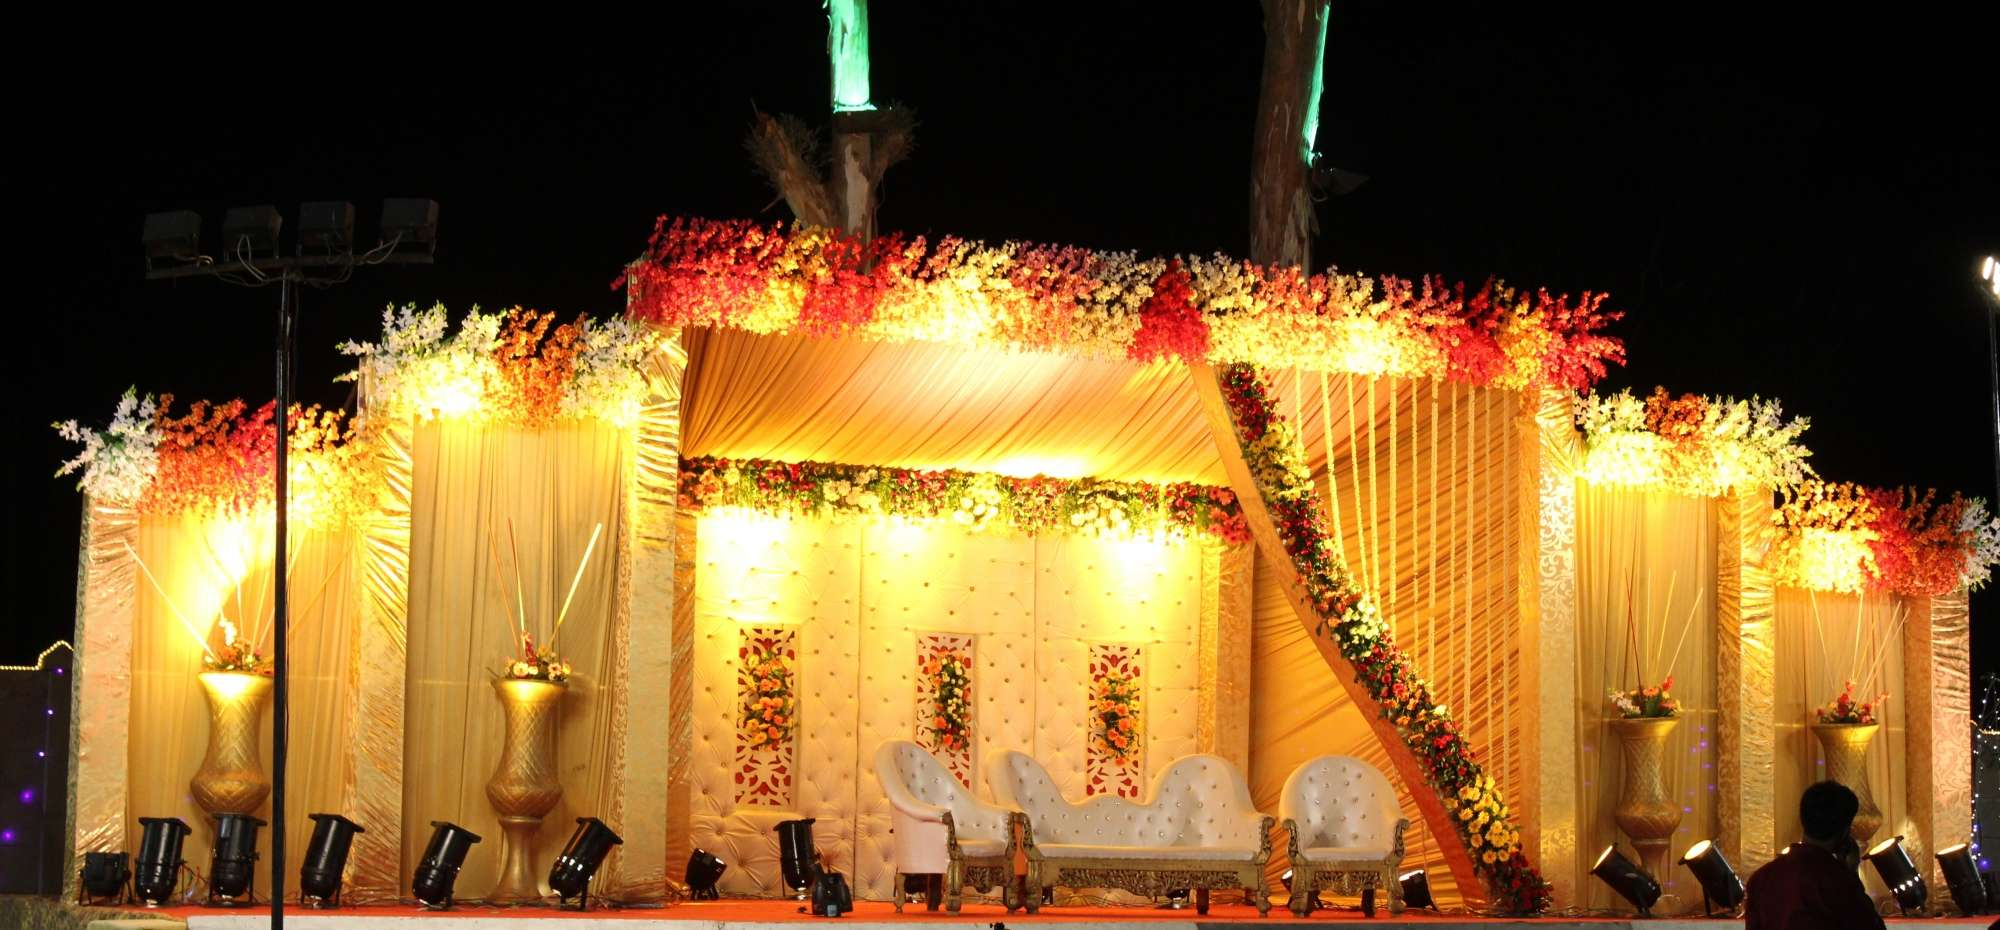 MARRIAGE PARTY HALL IN HAZARIBAGH